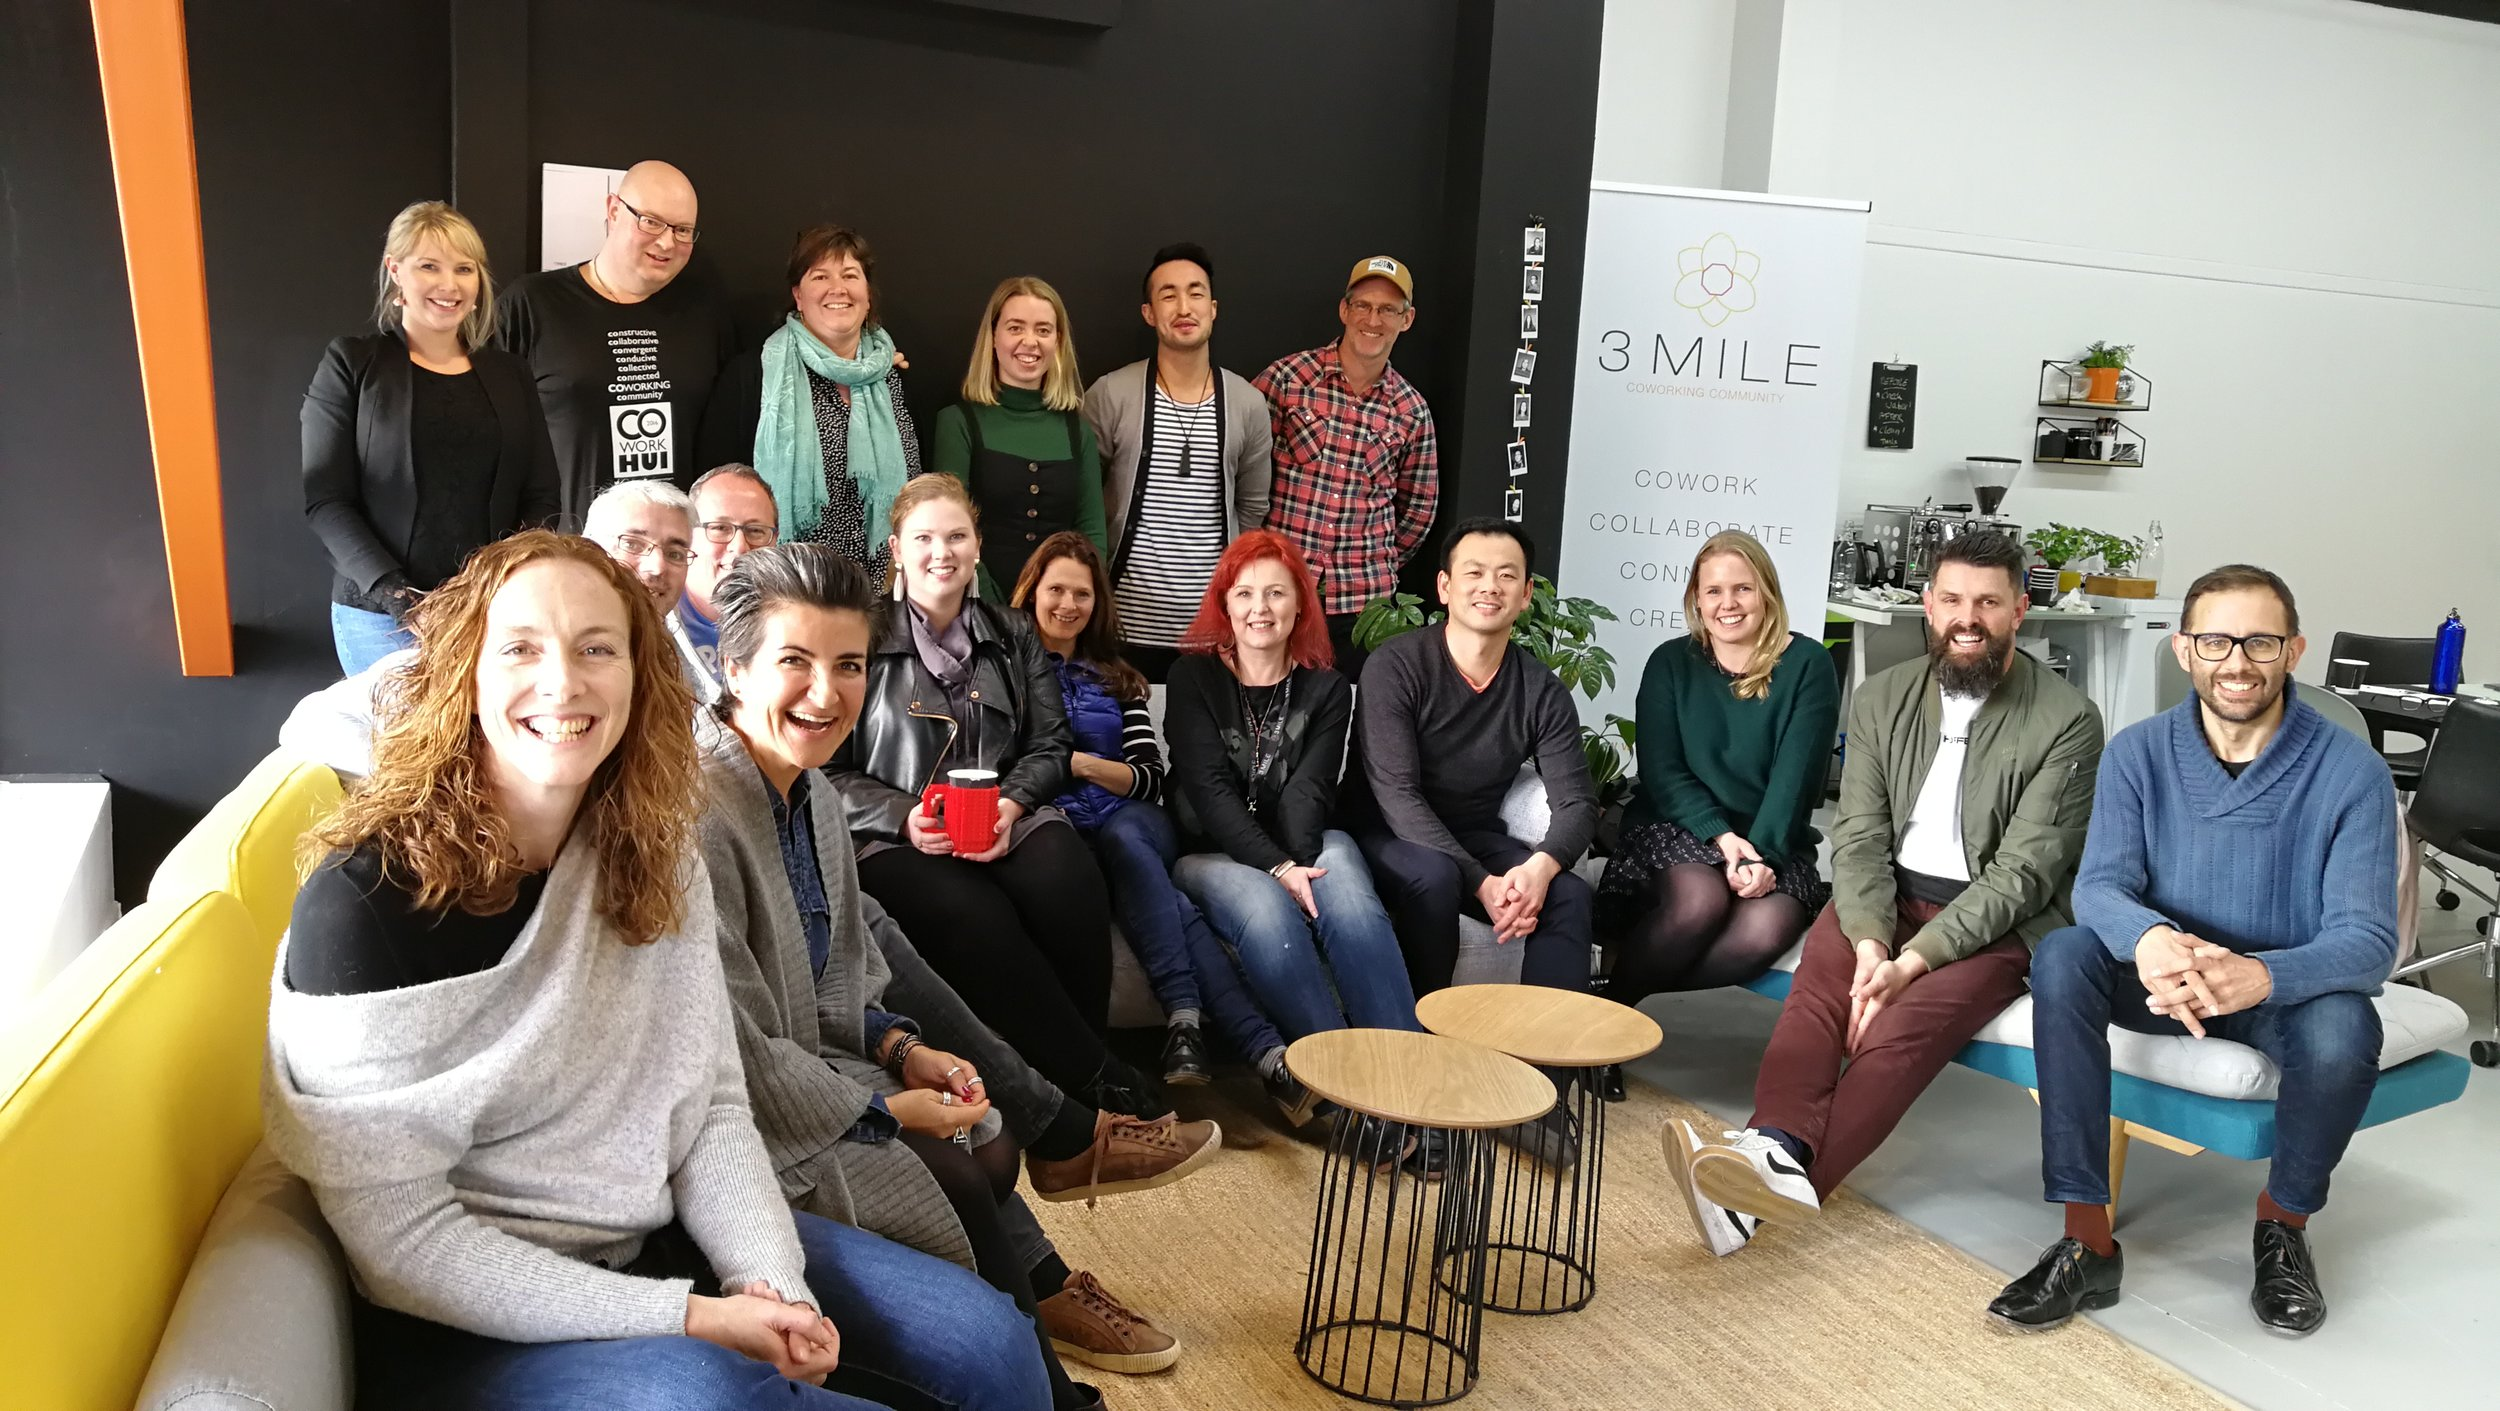 Coworking Association Delaney Thorn Kapiti Collective